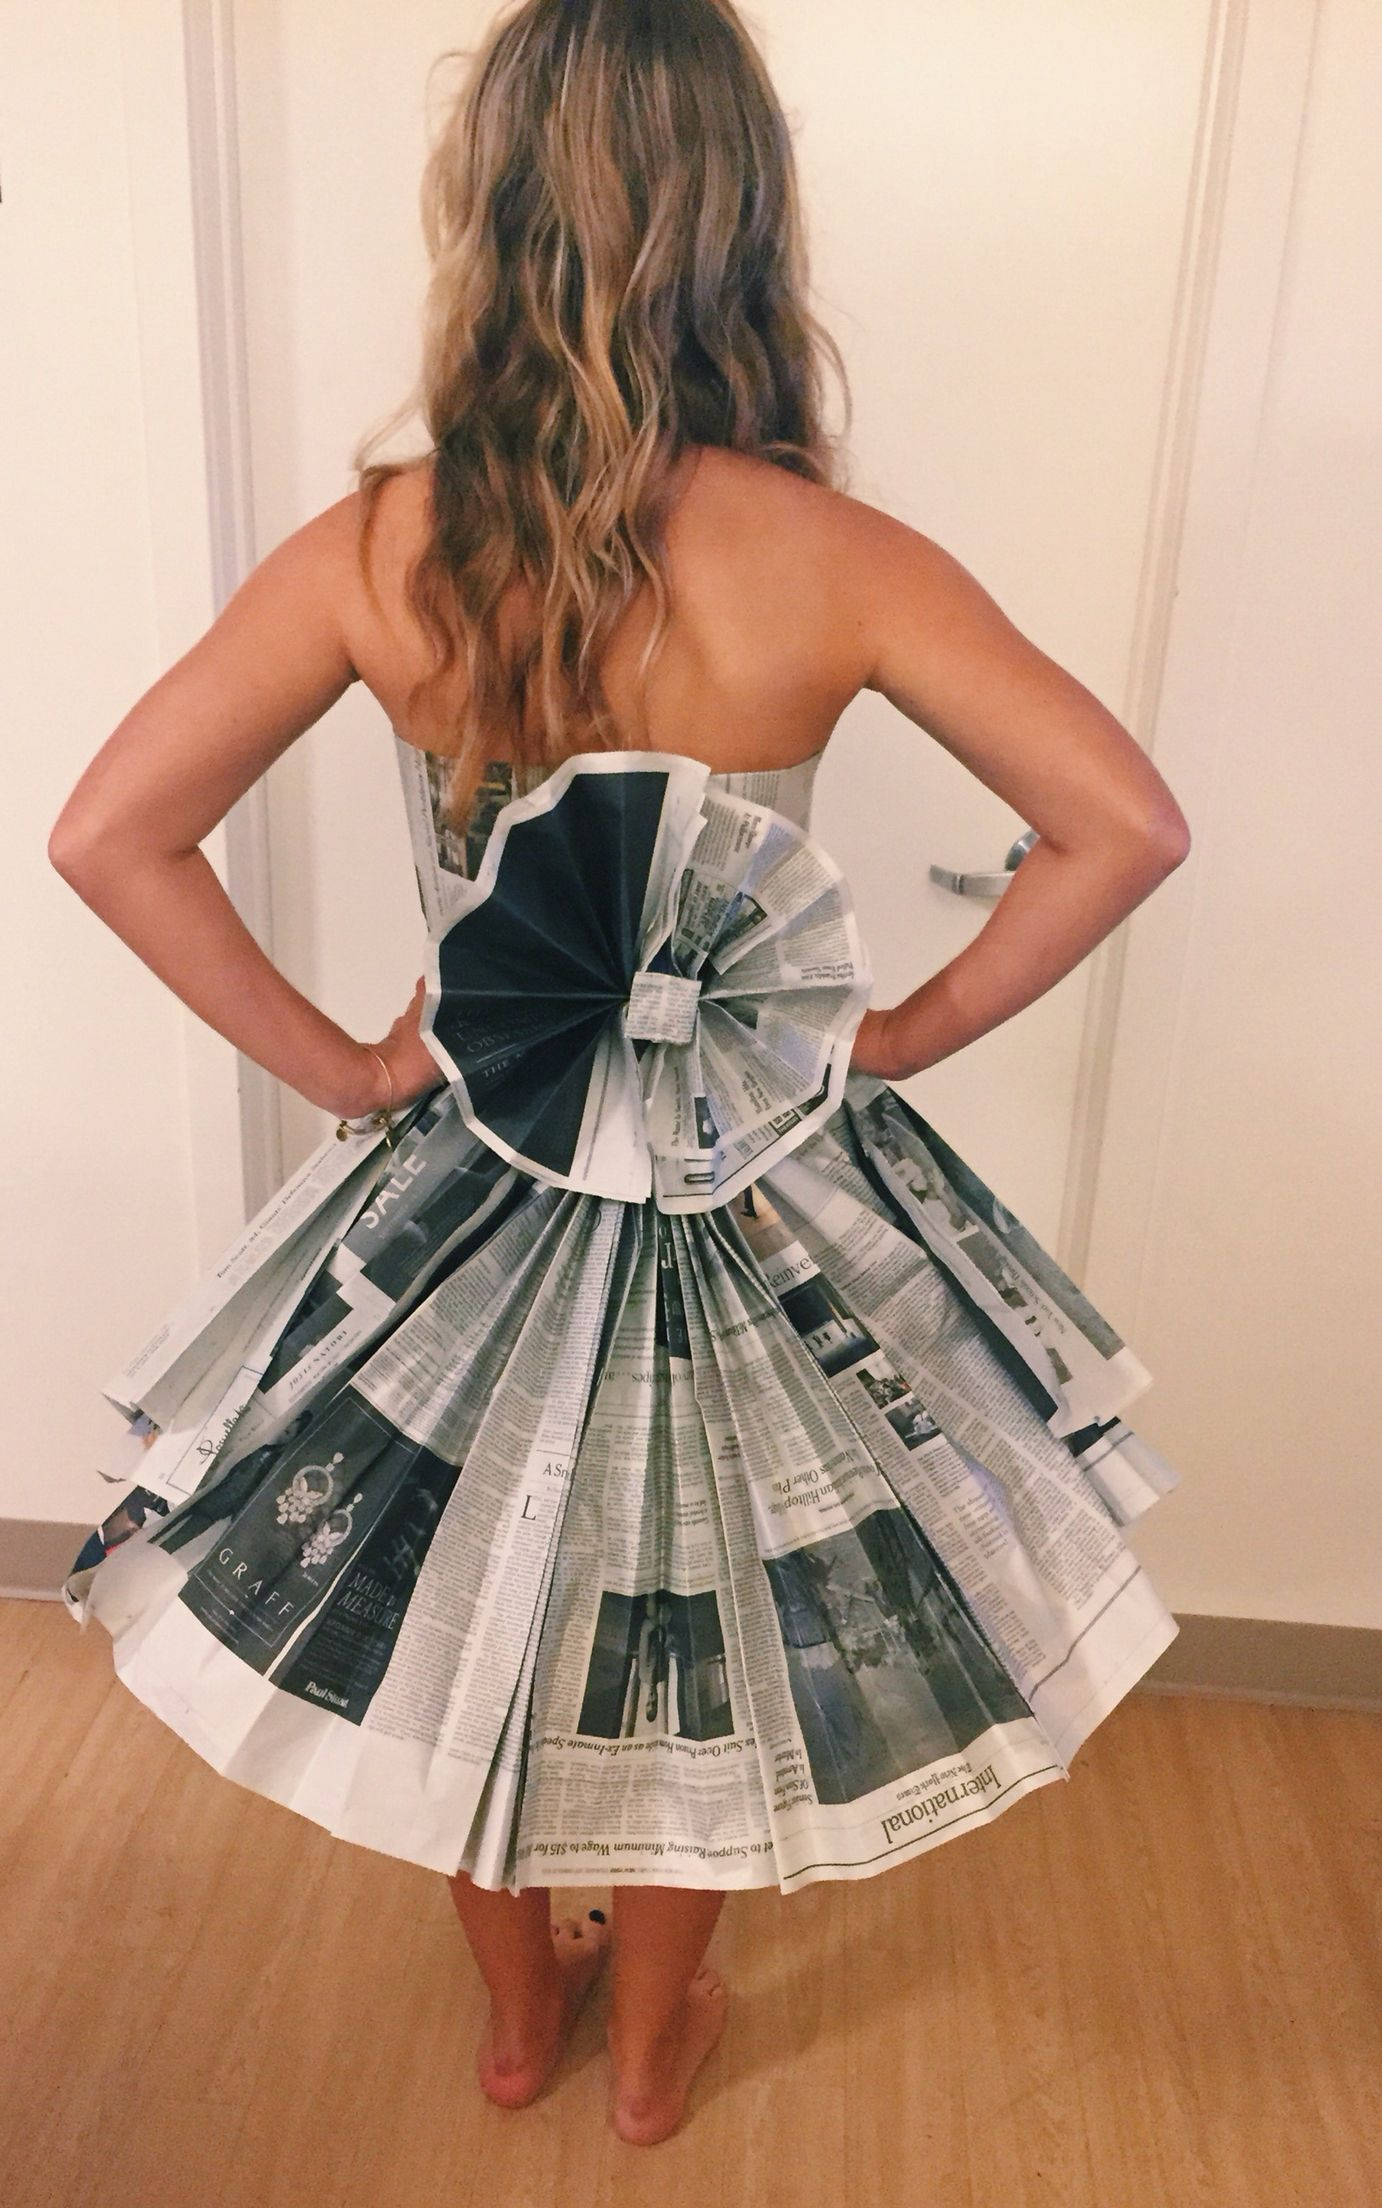 Calmly Newspaper Abc Diy Black Girls Abc Party Ideas Men Abc Diy Black Newspaper Costumes Abc Party Ideas